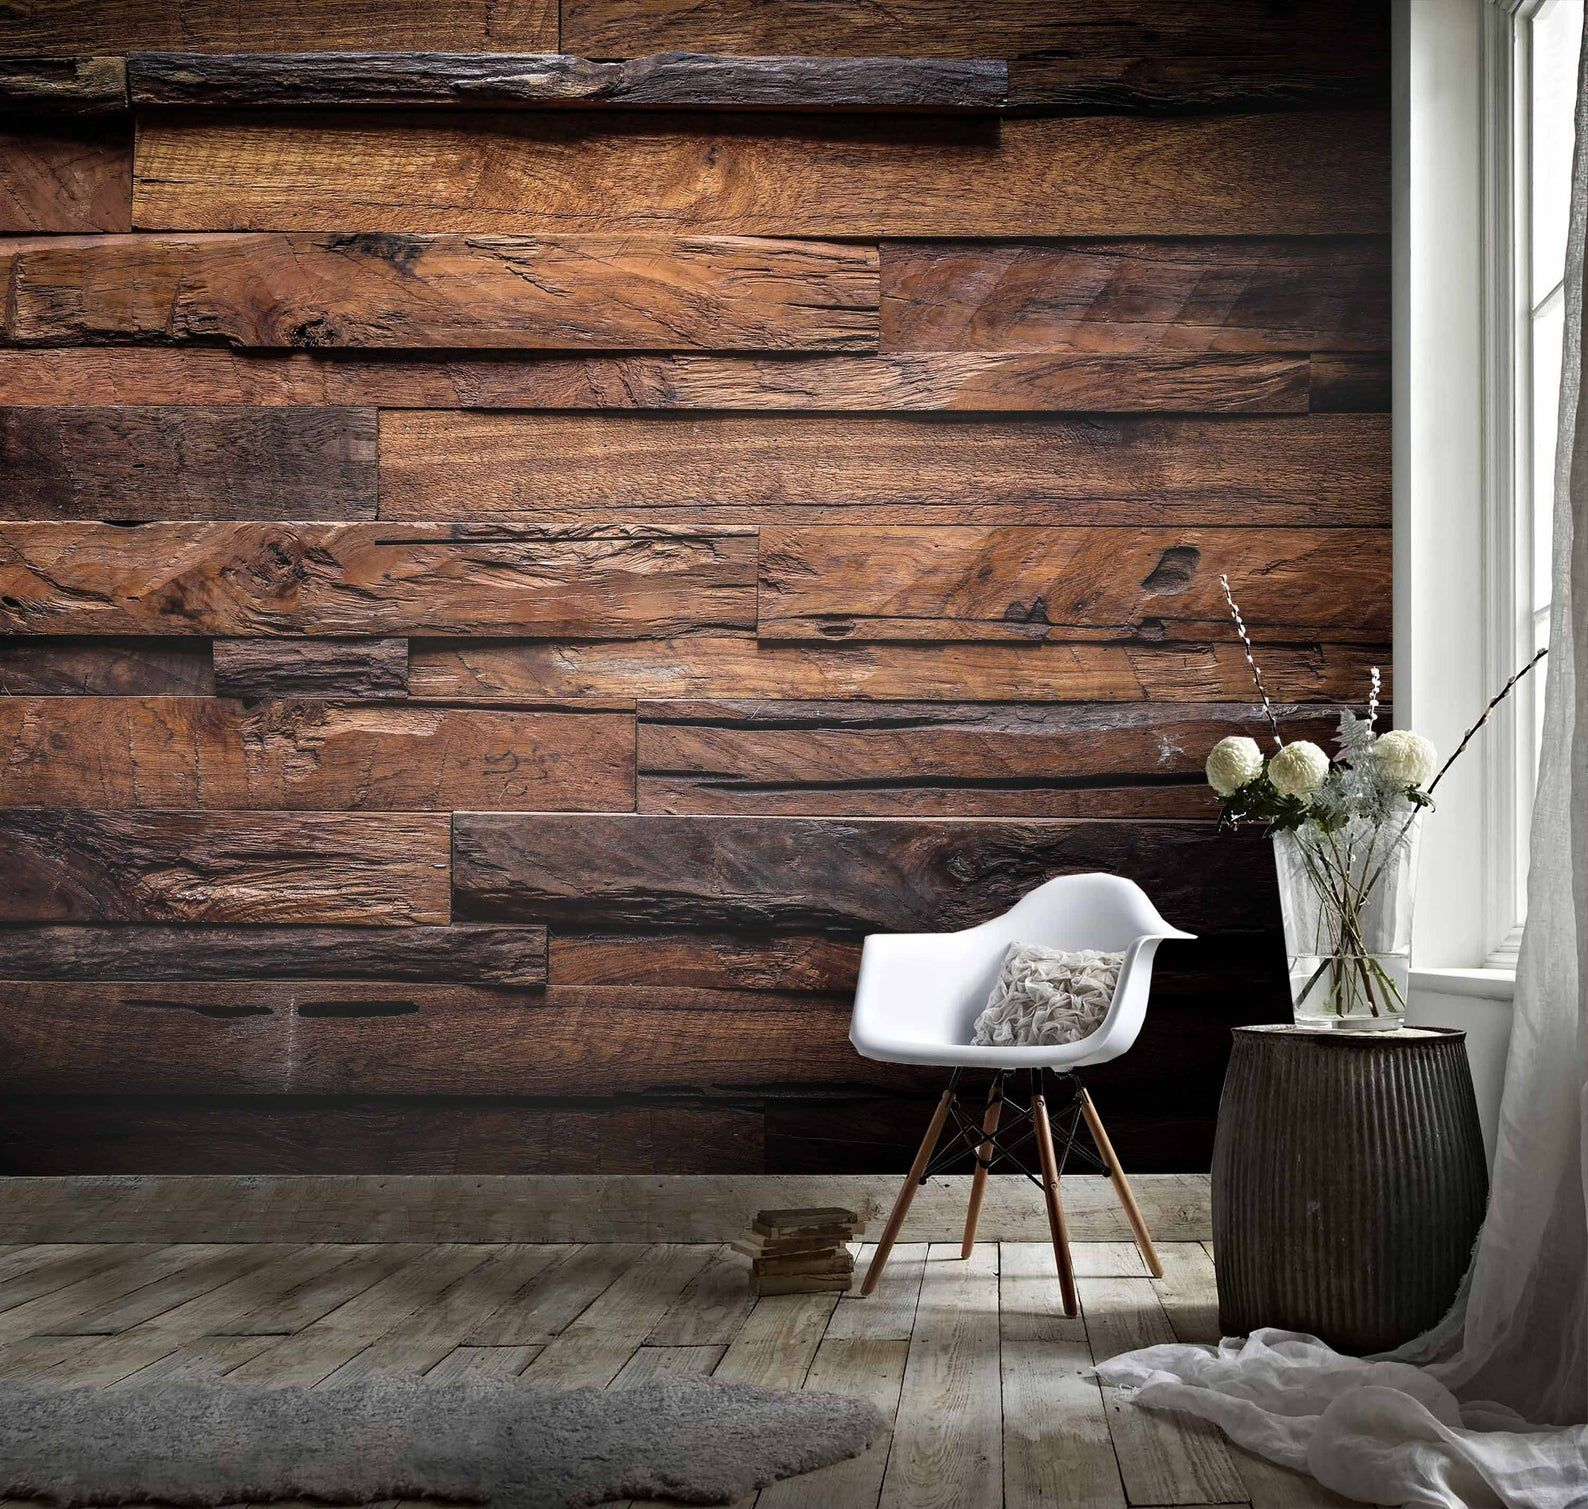 3d Dark Brown Wooden Floor Board Texture Wallpaper Mural Peel And Stick Wallpaper Removable Wall Prints Stickers Feature Wall Wallpaer B473 In 2021 Wood Grain Wallpaper Floor Wallpaper Textured Wallpaper